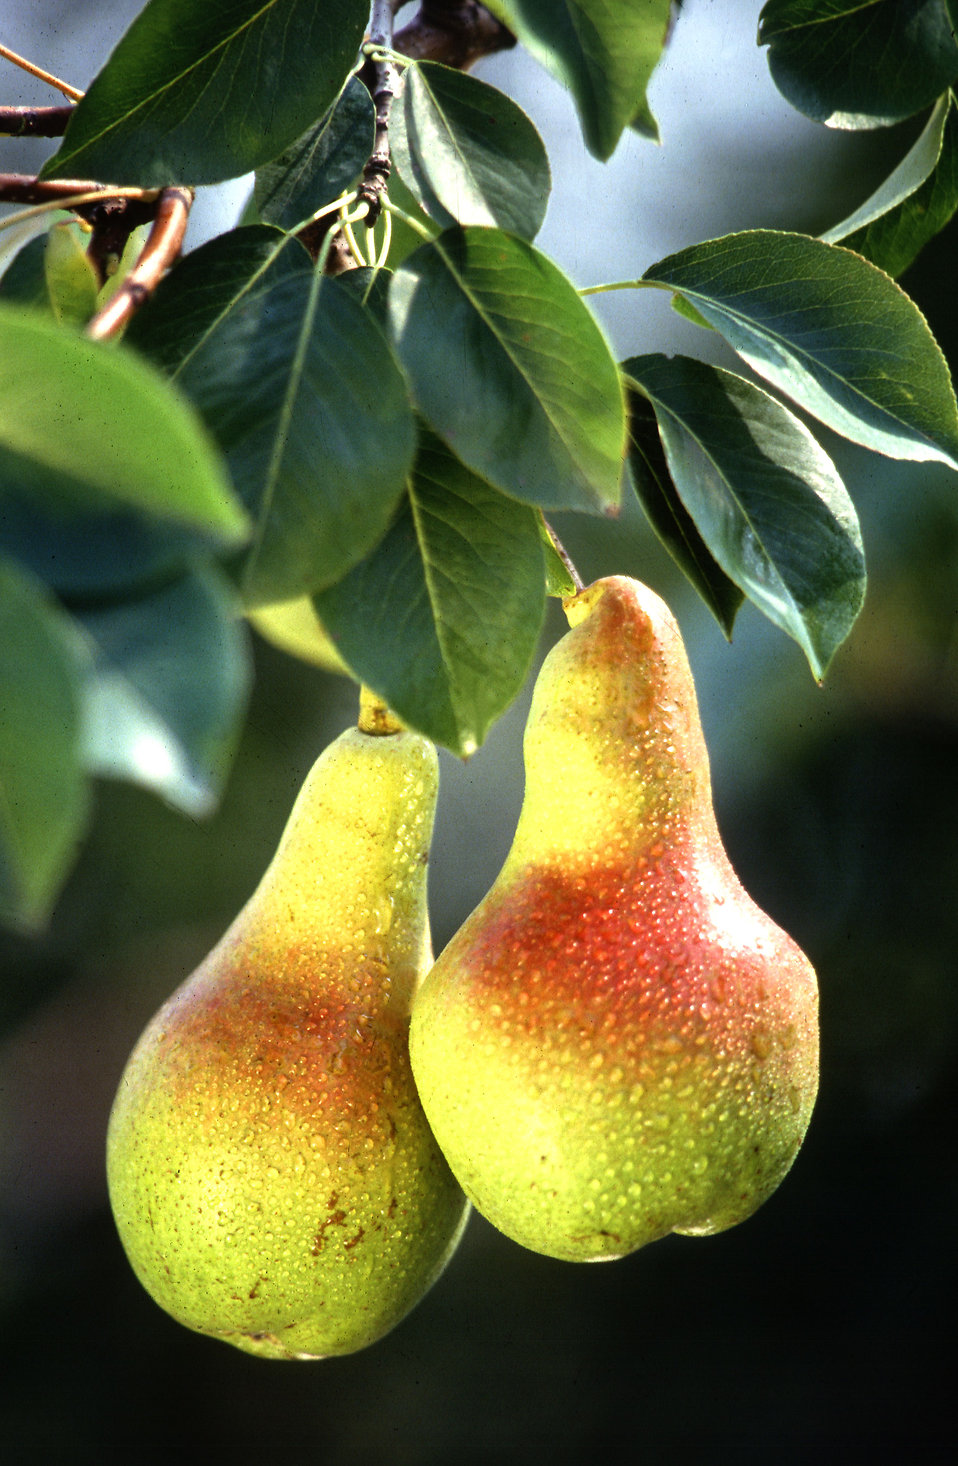 A pair of pears growing on a tree : Free Stock Photo